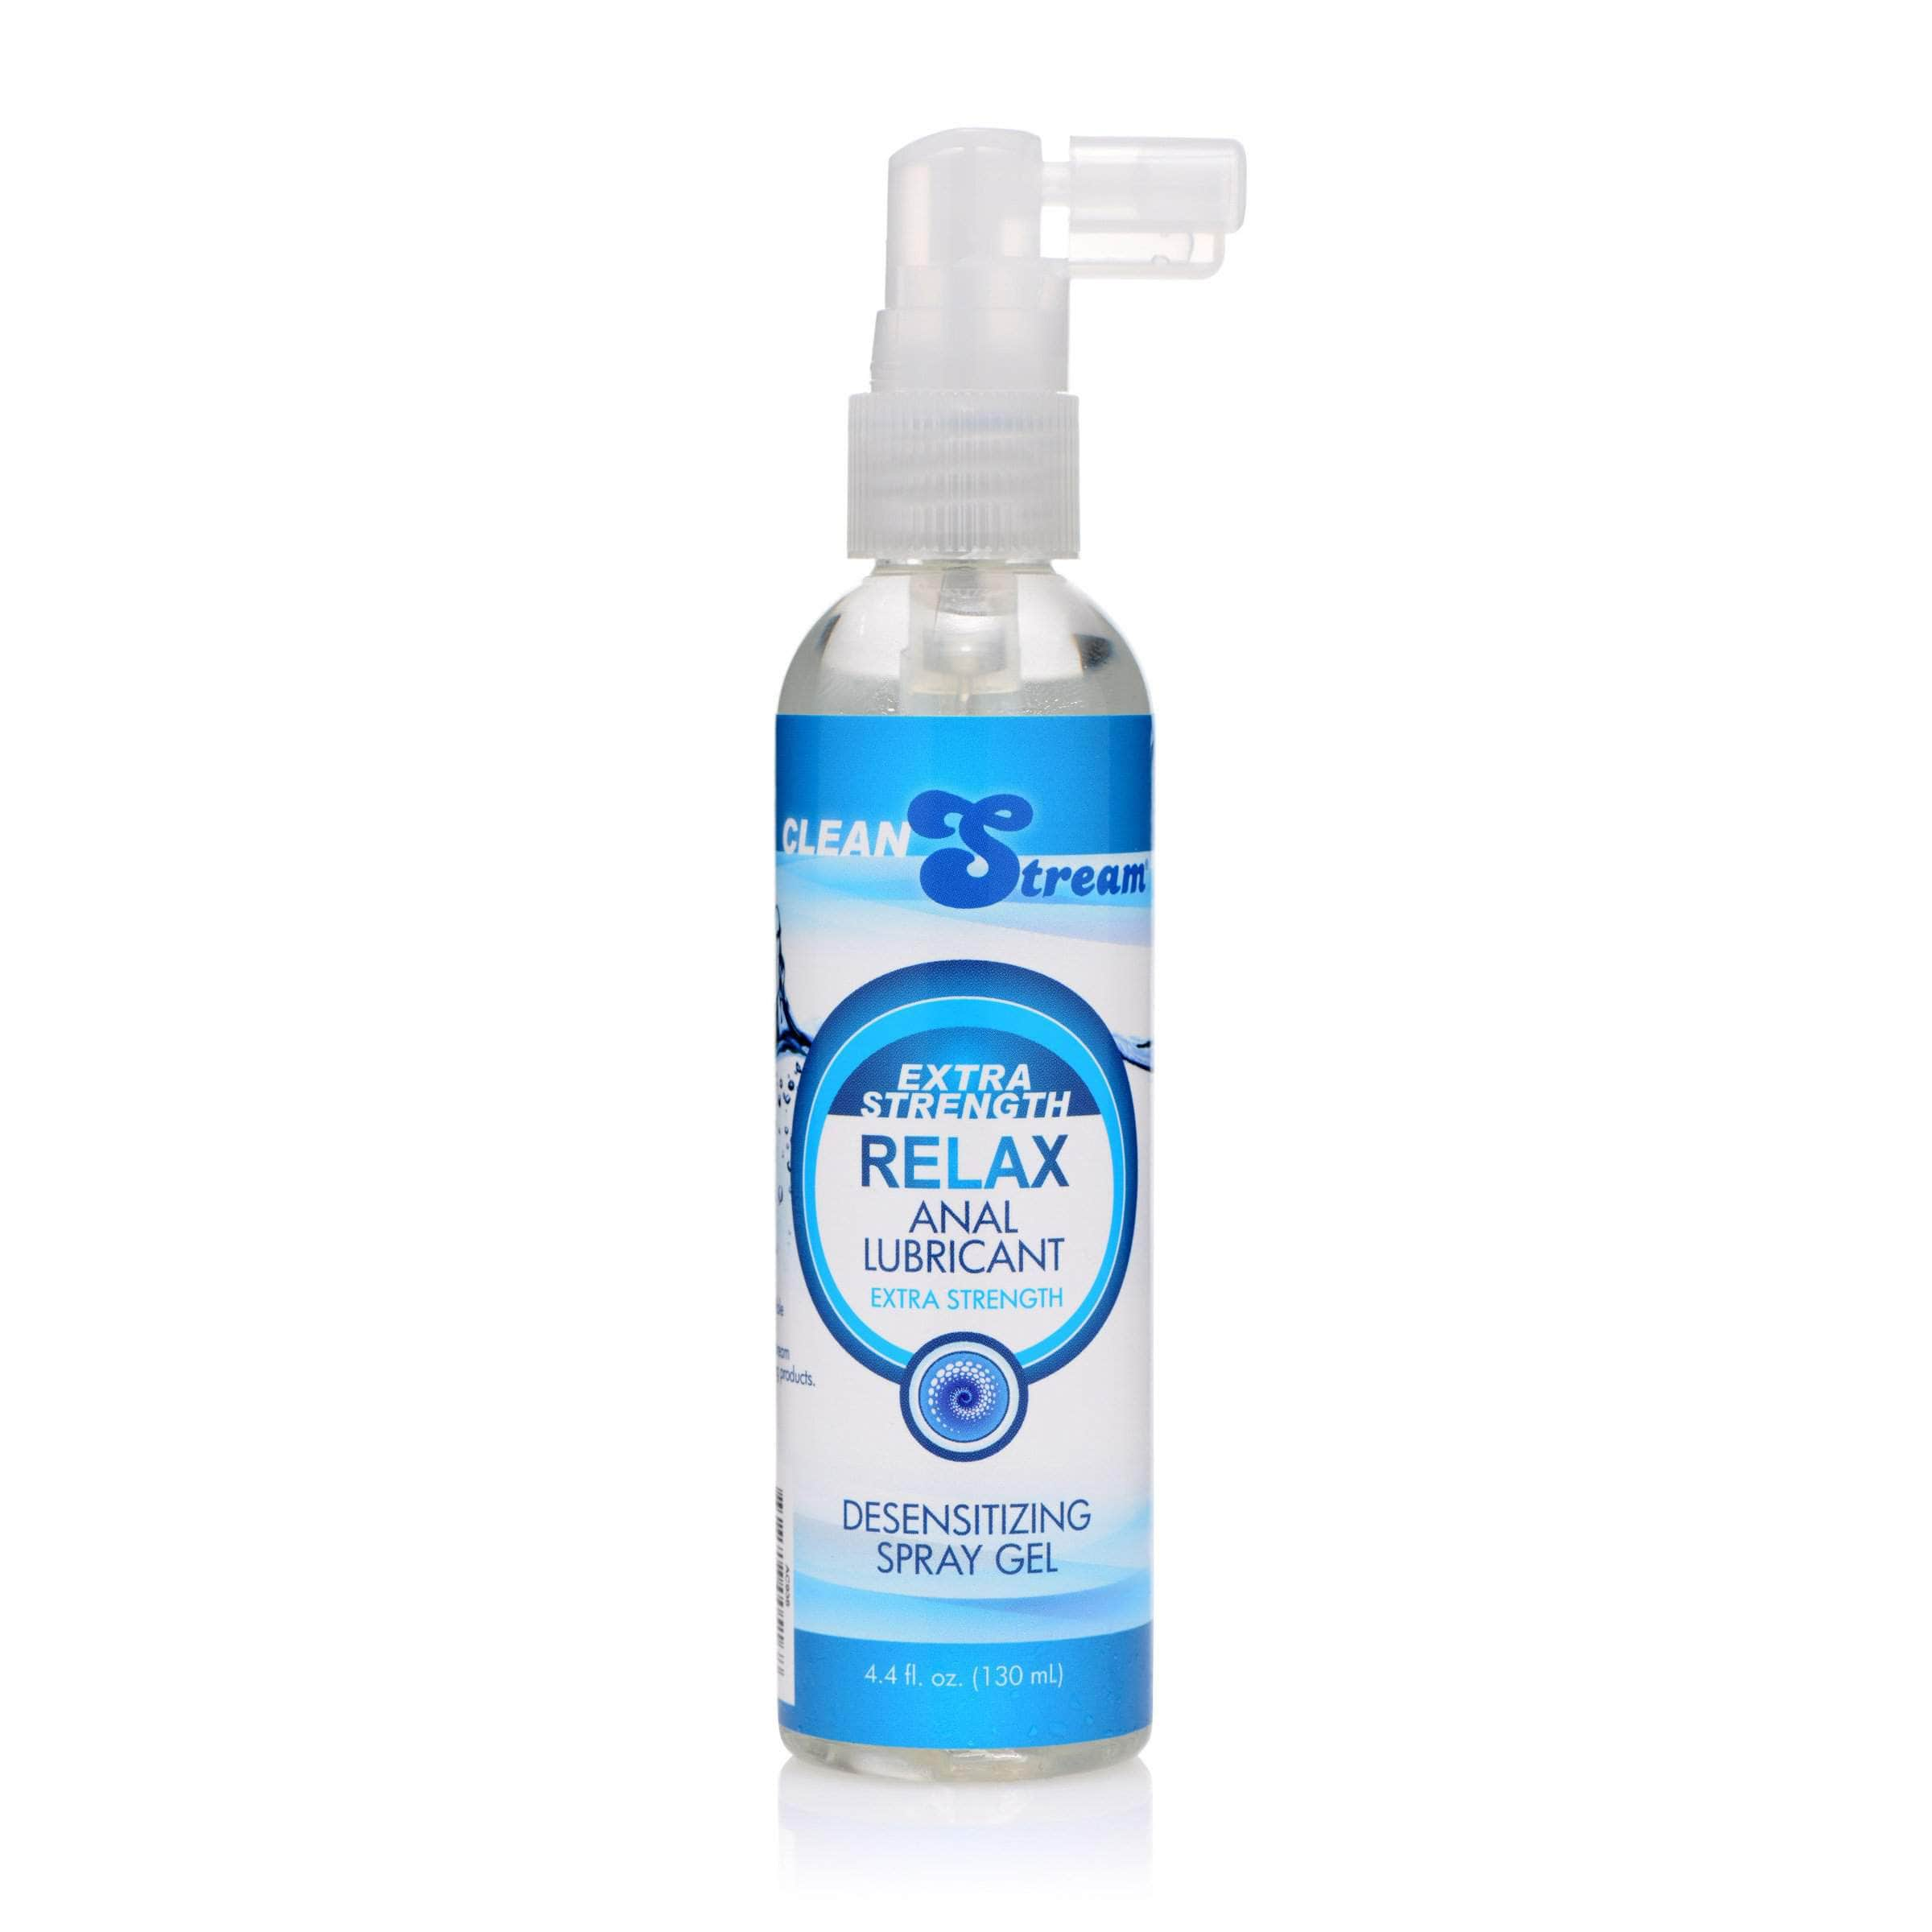 Relax Extra Strength Anal Lube - 4.4 Oz